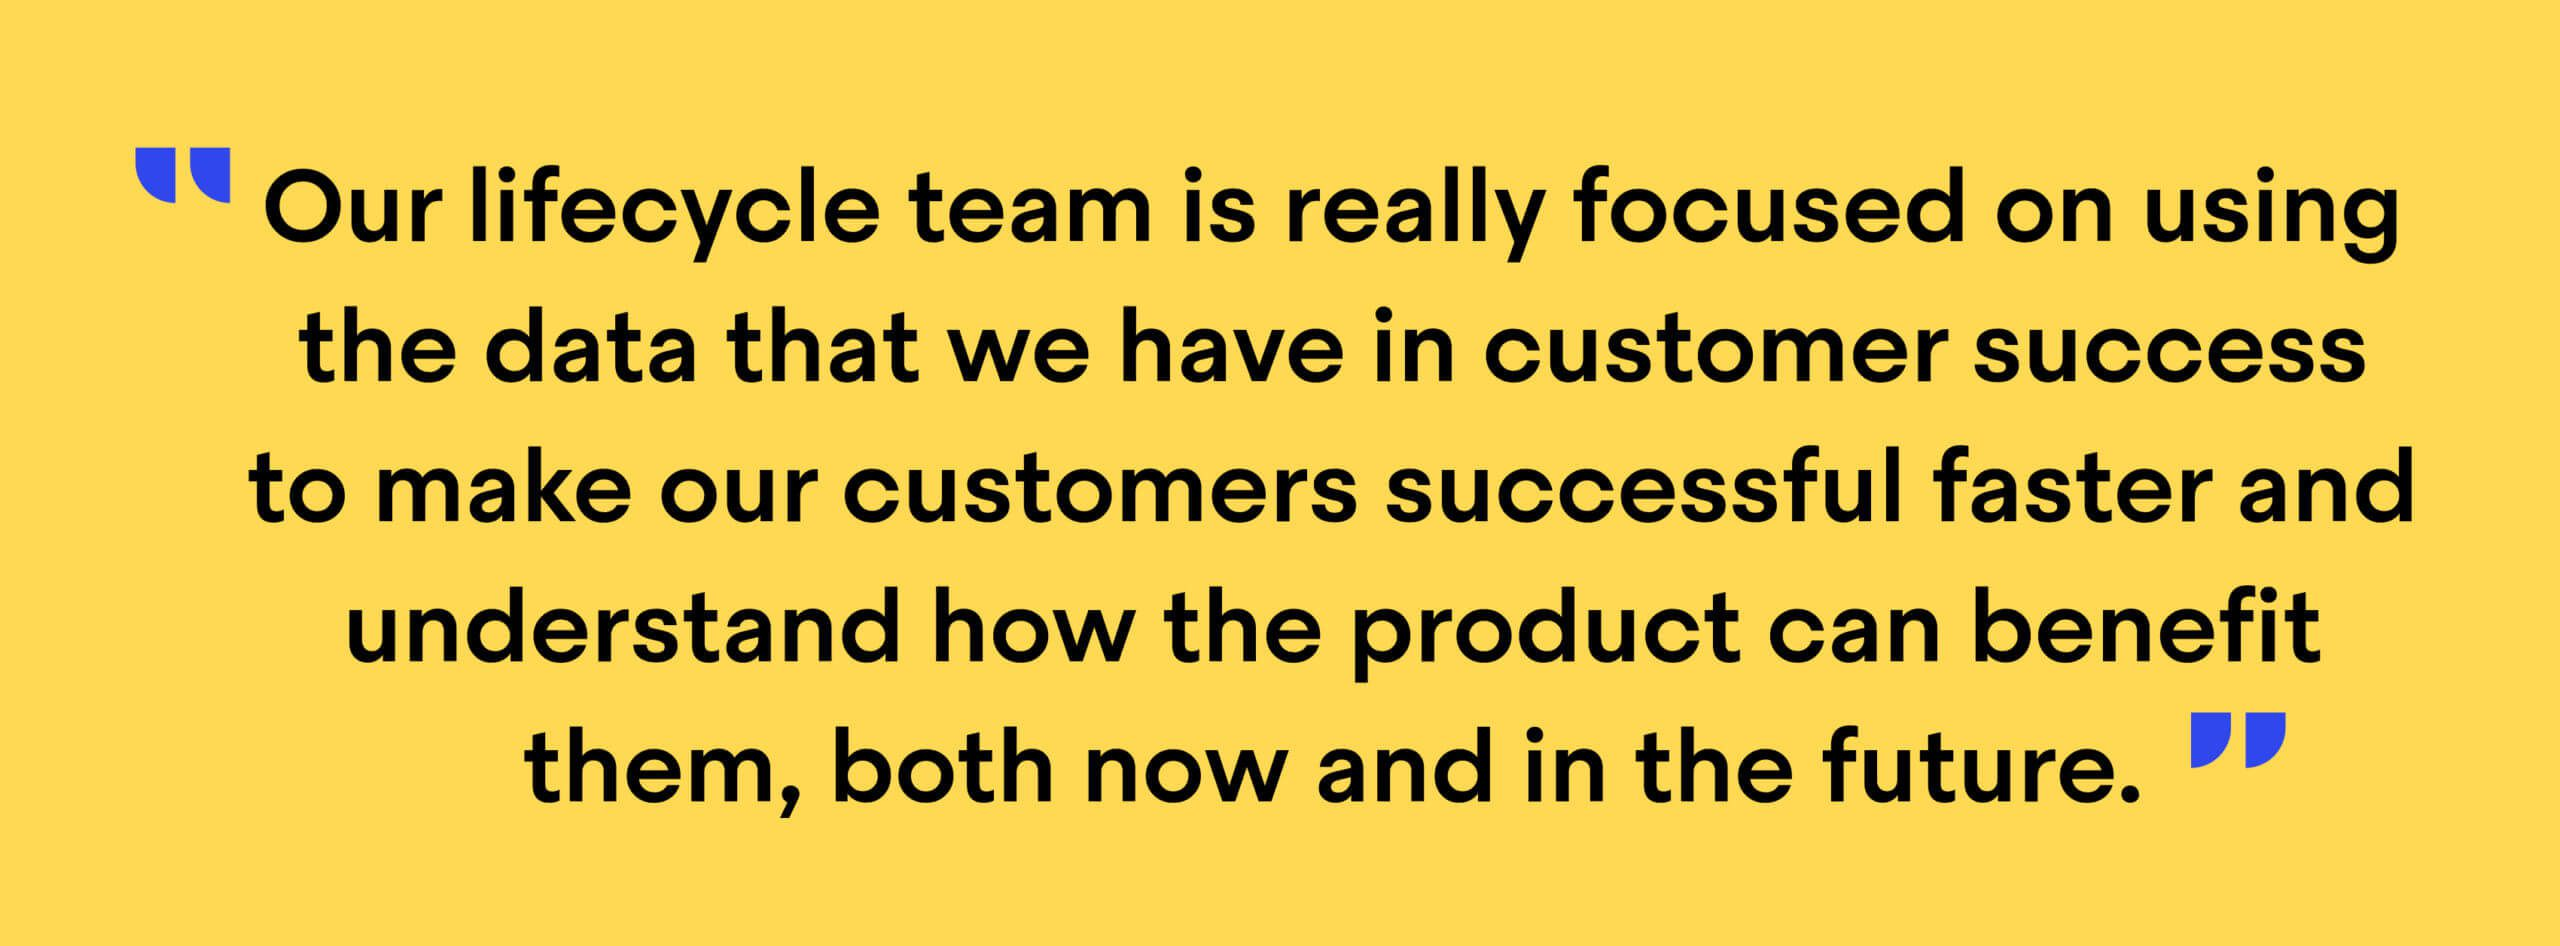 """Quote from Christine Werner, Senior Director of Customer Success at Typeform: """"Our lifecycle team is really focused on using the data that we have in customer success to make our customers successful faster and understand how the product can benefit them, both now and in the future."""""""